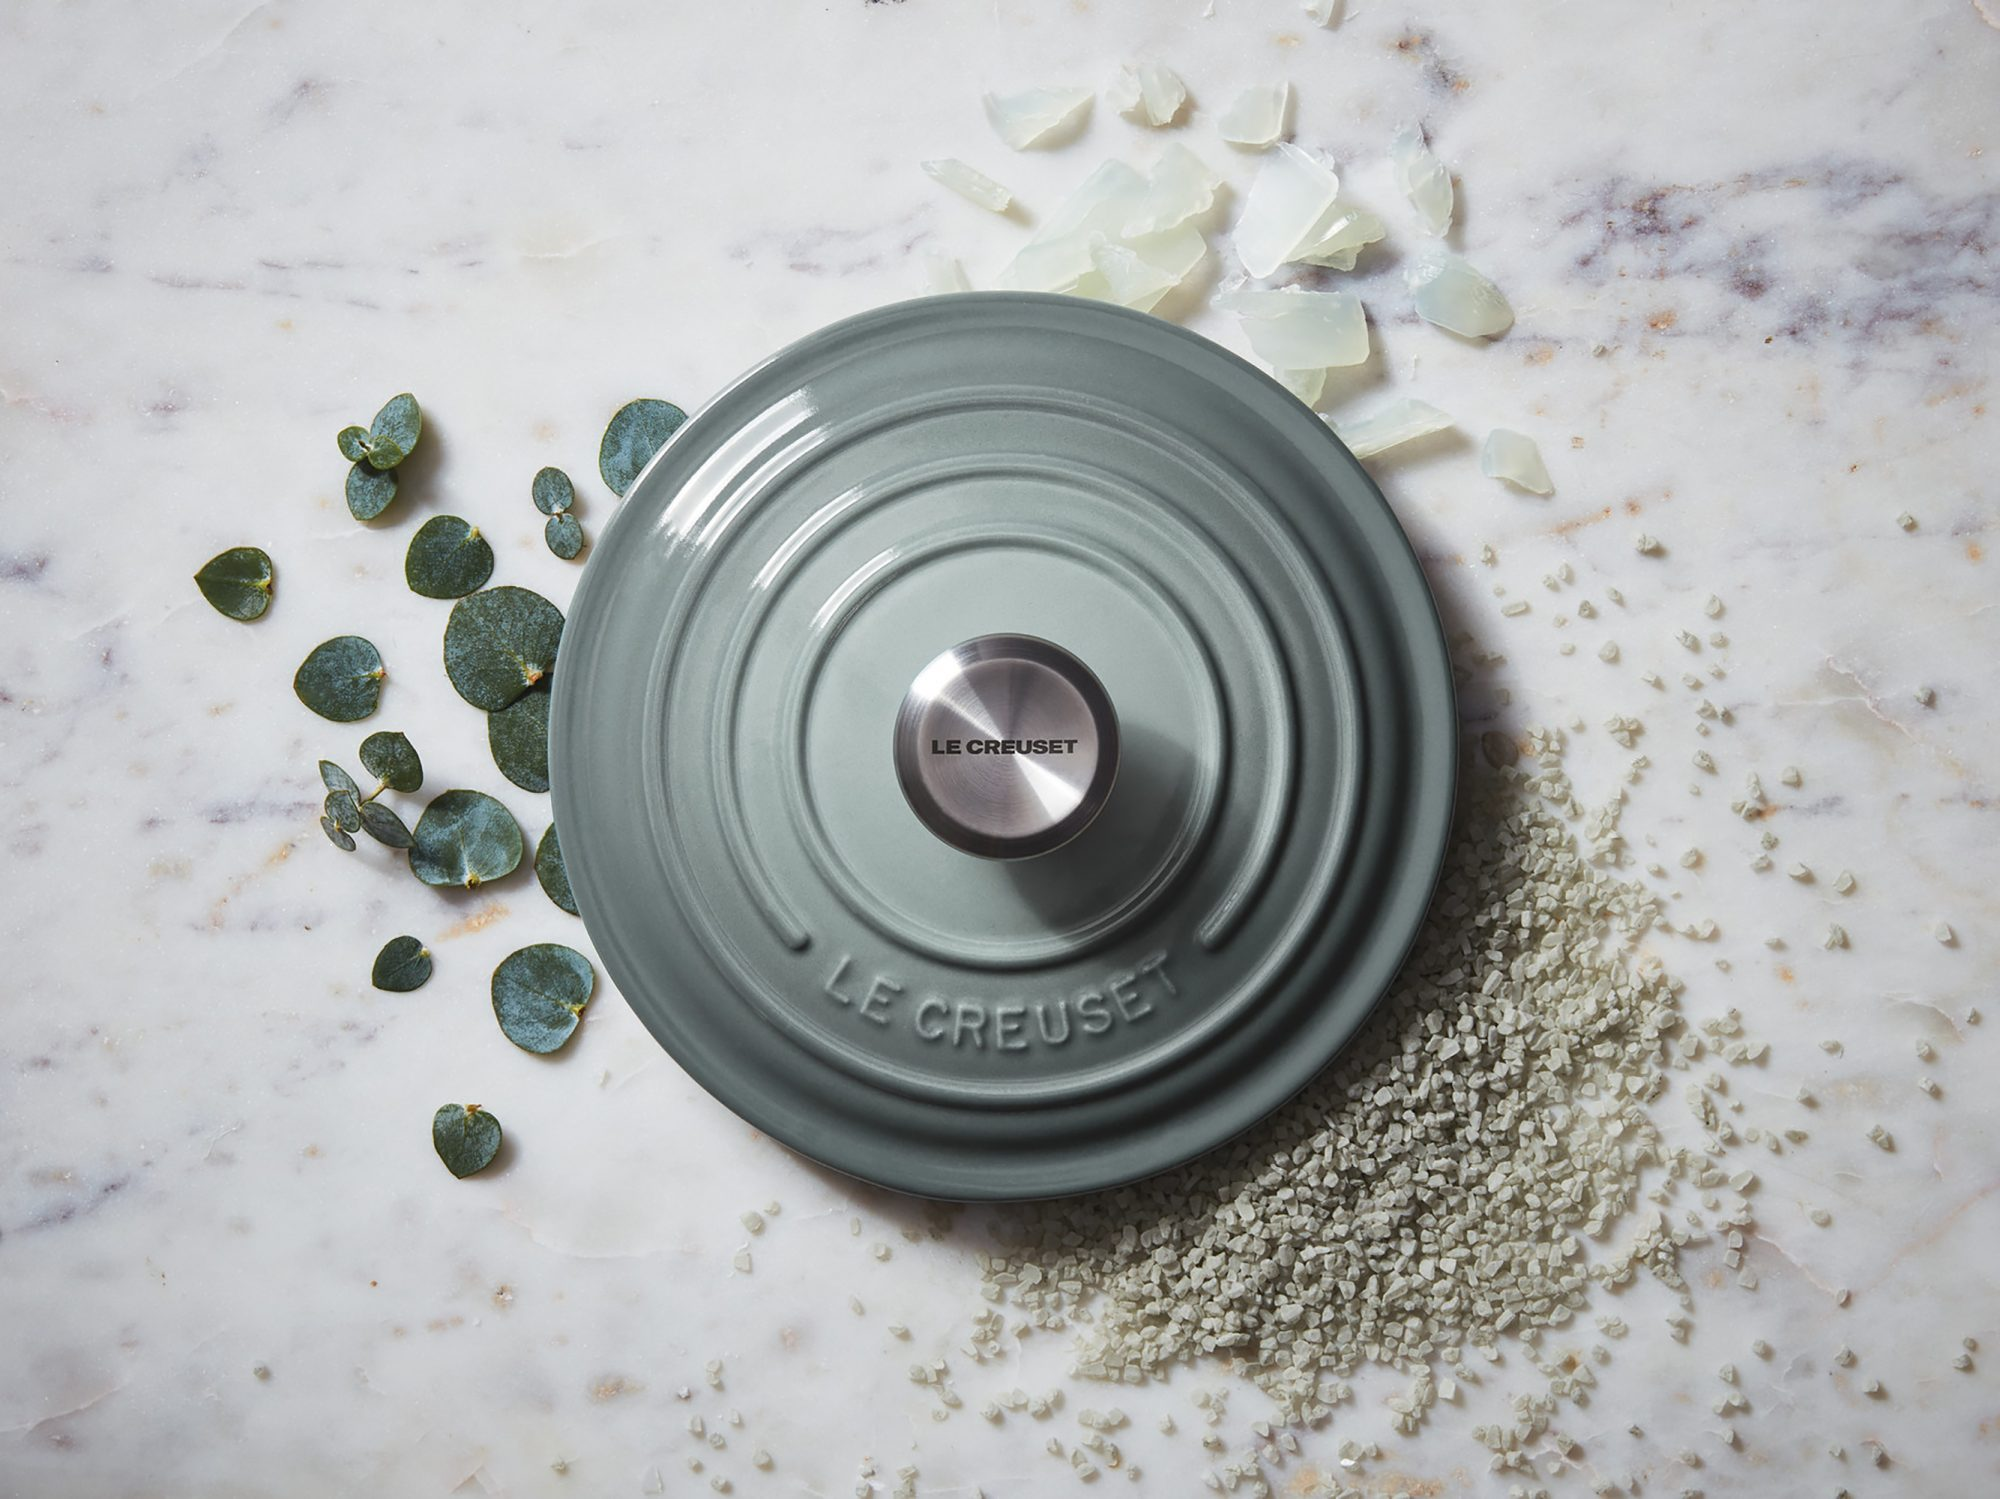 Le Creuset Just Launched THREE New Colors, and We're Obsessed With Them All